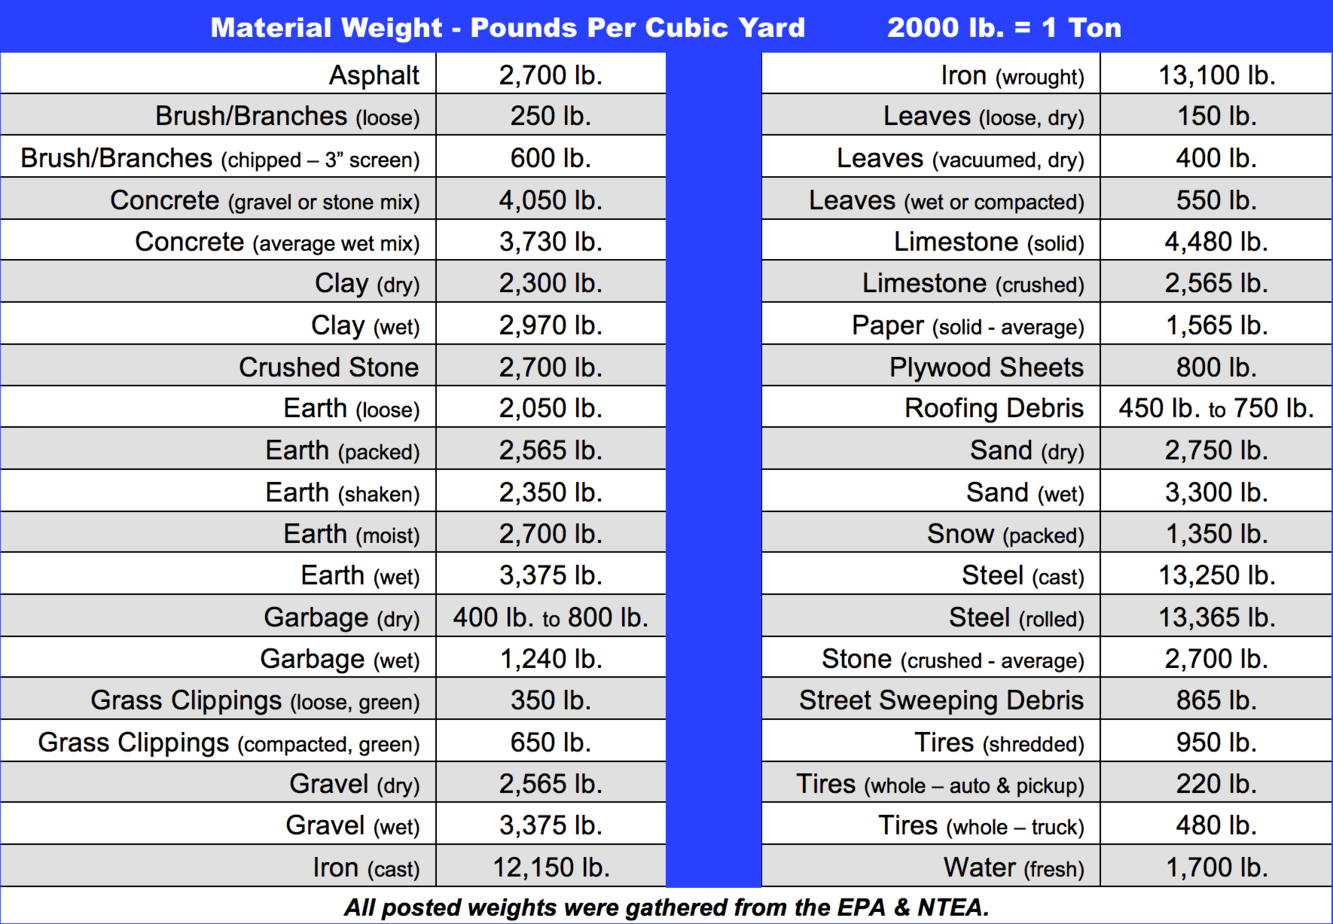 Material Weight Chart for Dirt, Rock, and Concrete